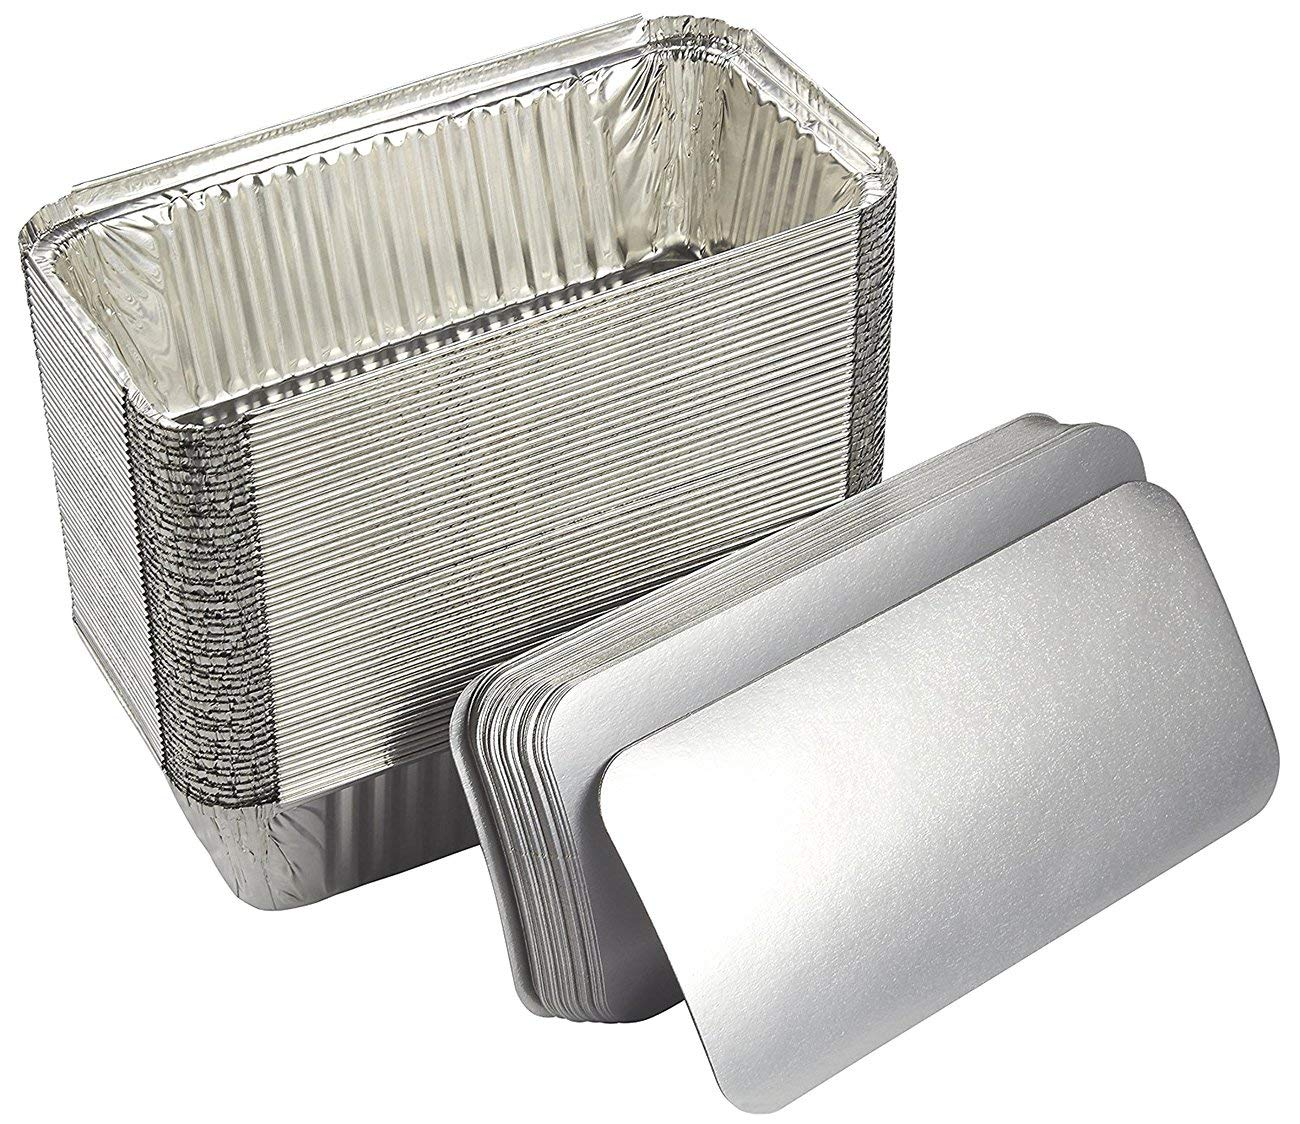 Aluminum Foil Pans - 50-Piece Loaf Deep Disposable Steam Table Pans with Flat Board Lids for Baking, Roasting, Broiling, Cooking, 8.5 x 2.5 x 4.5 Inches